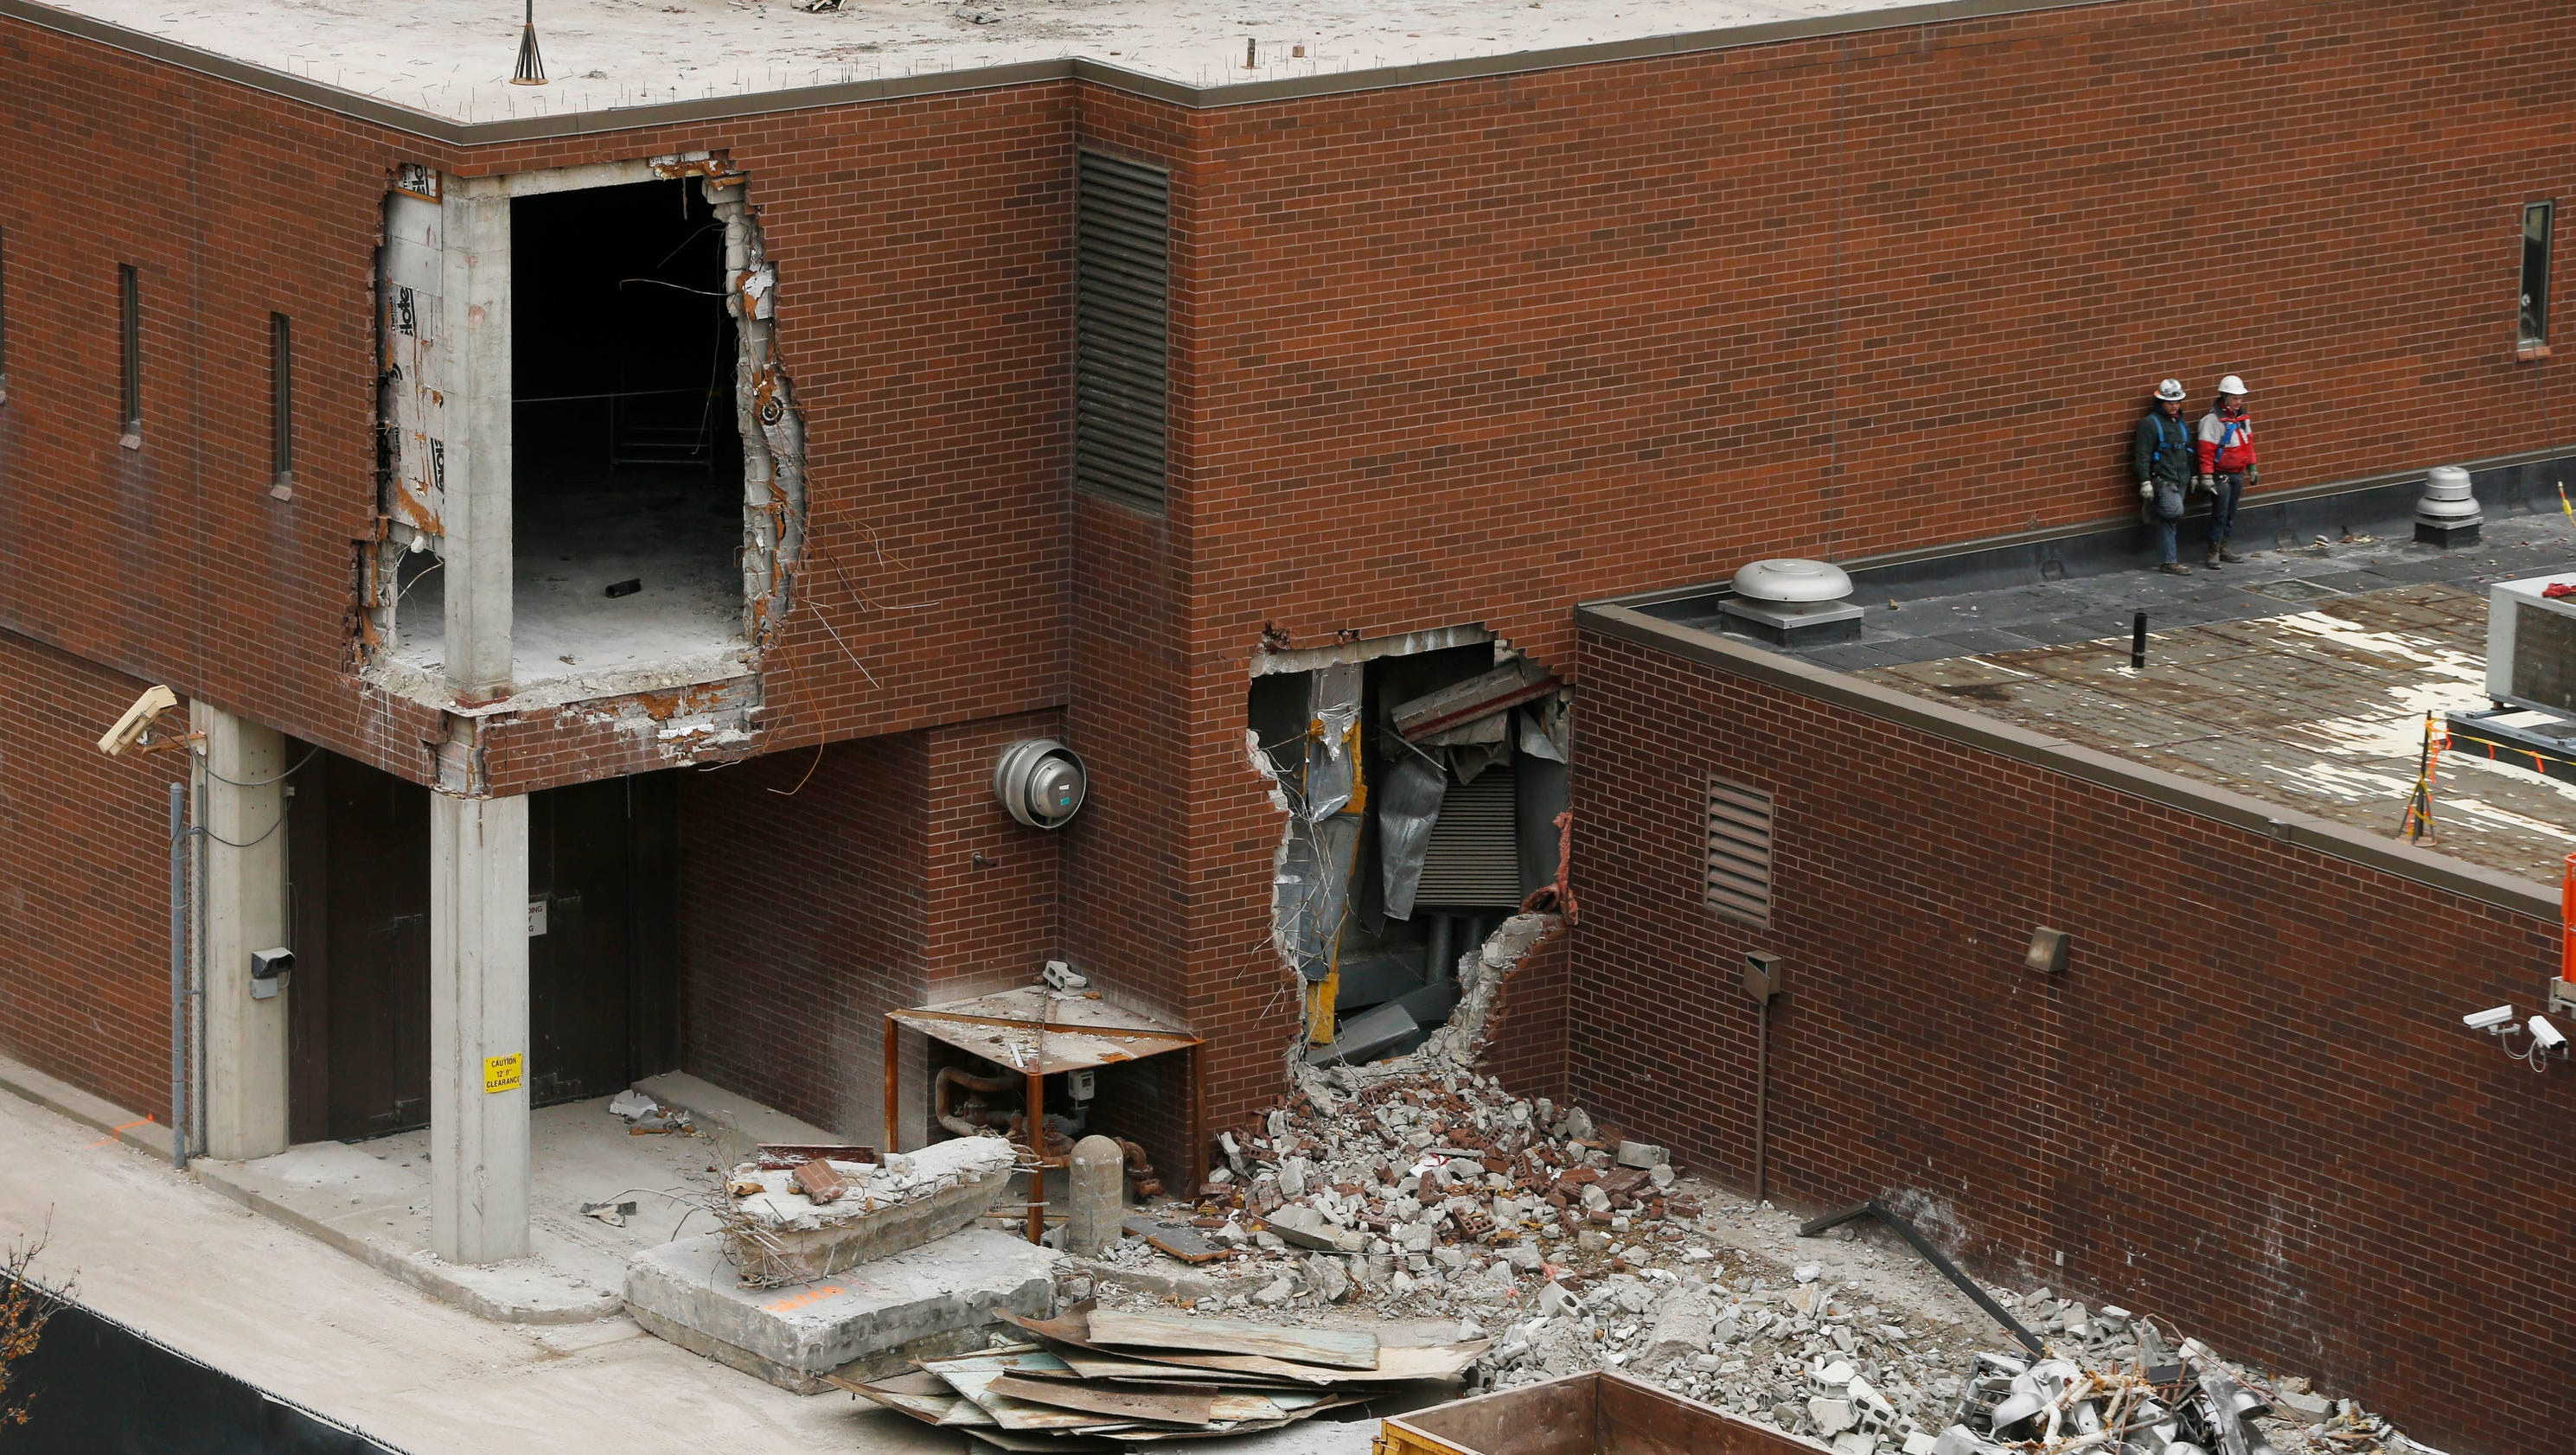 biz buzz polk county jail being demolished floor by floor